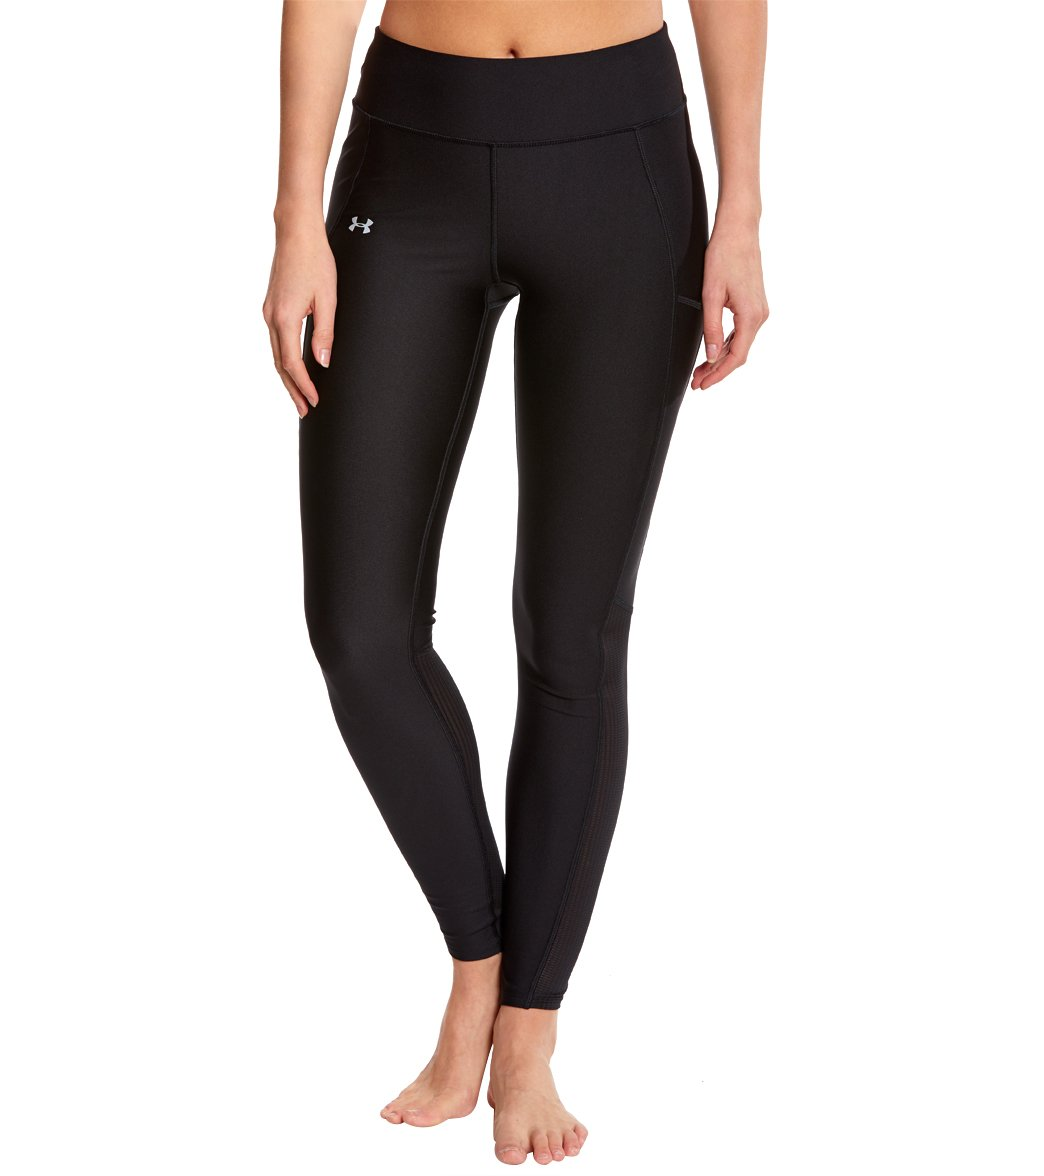 dd81ff2a536cdb Under Armour Women's Fly By Legging at SwimOutlet.com - Free Shipping